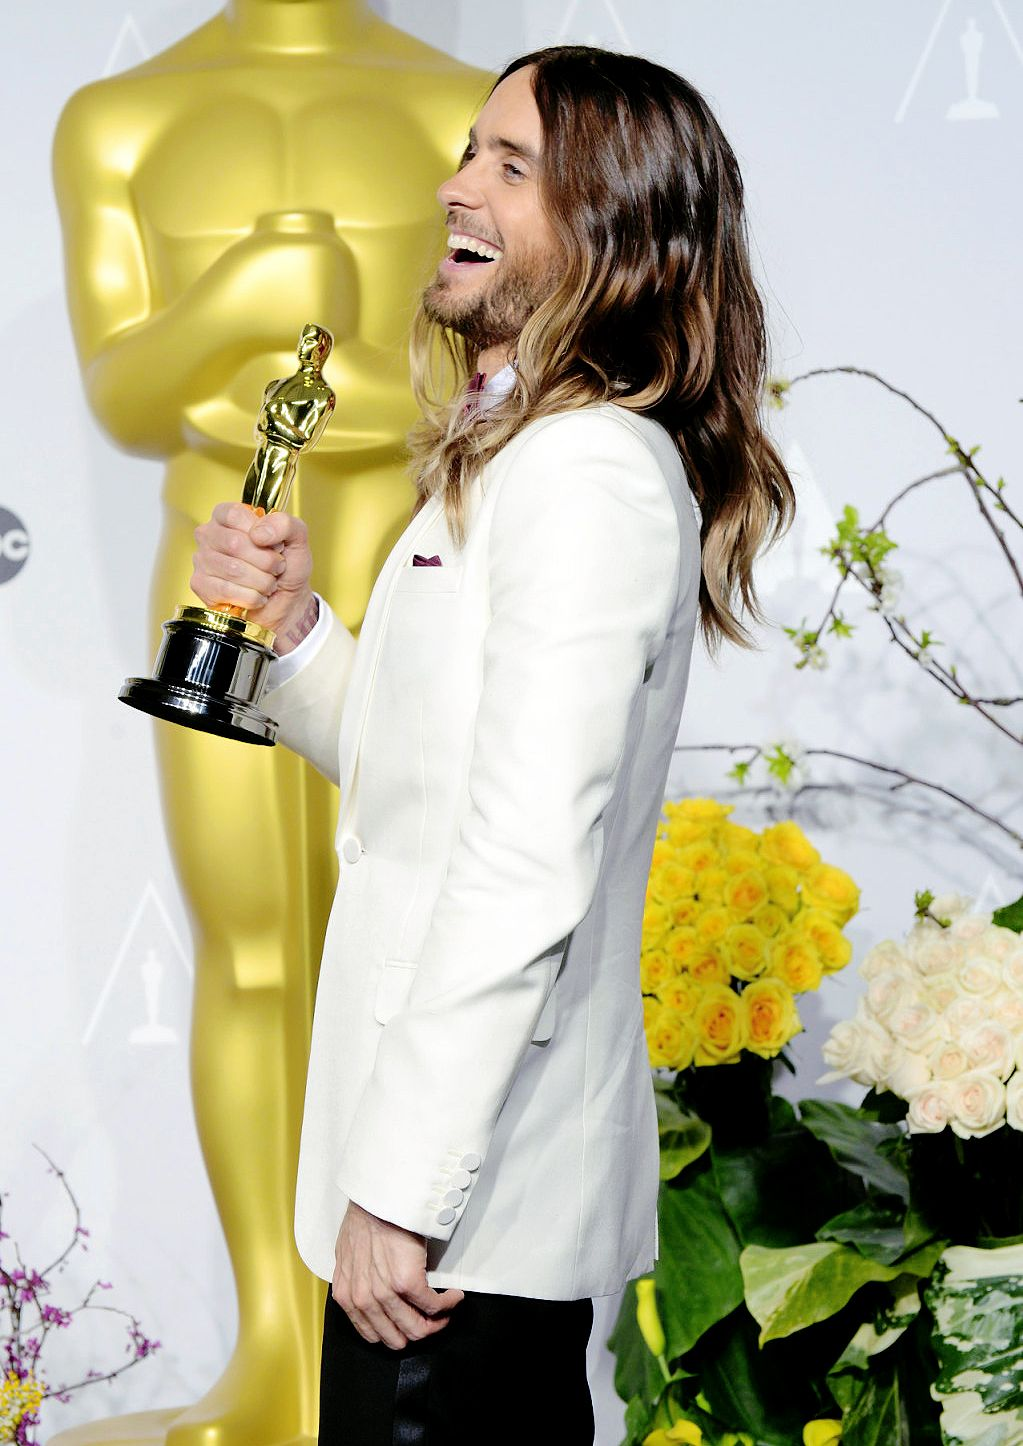 Backstage at the 86th Academy Awards